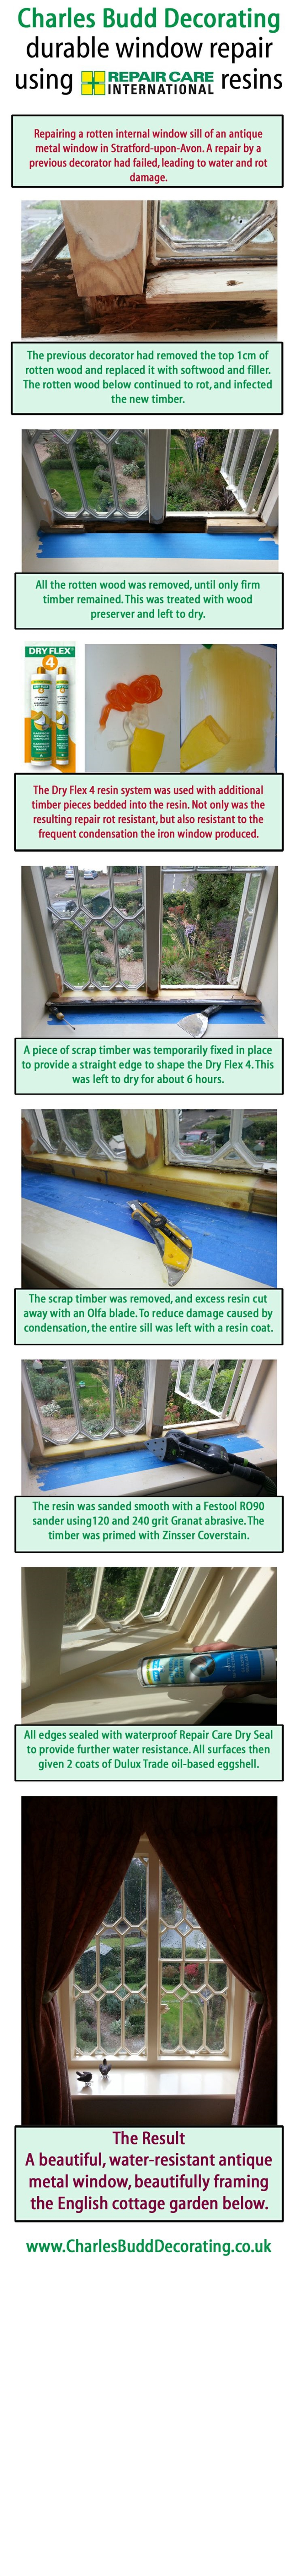 Interior window repair